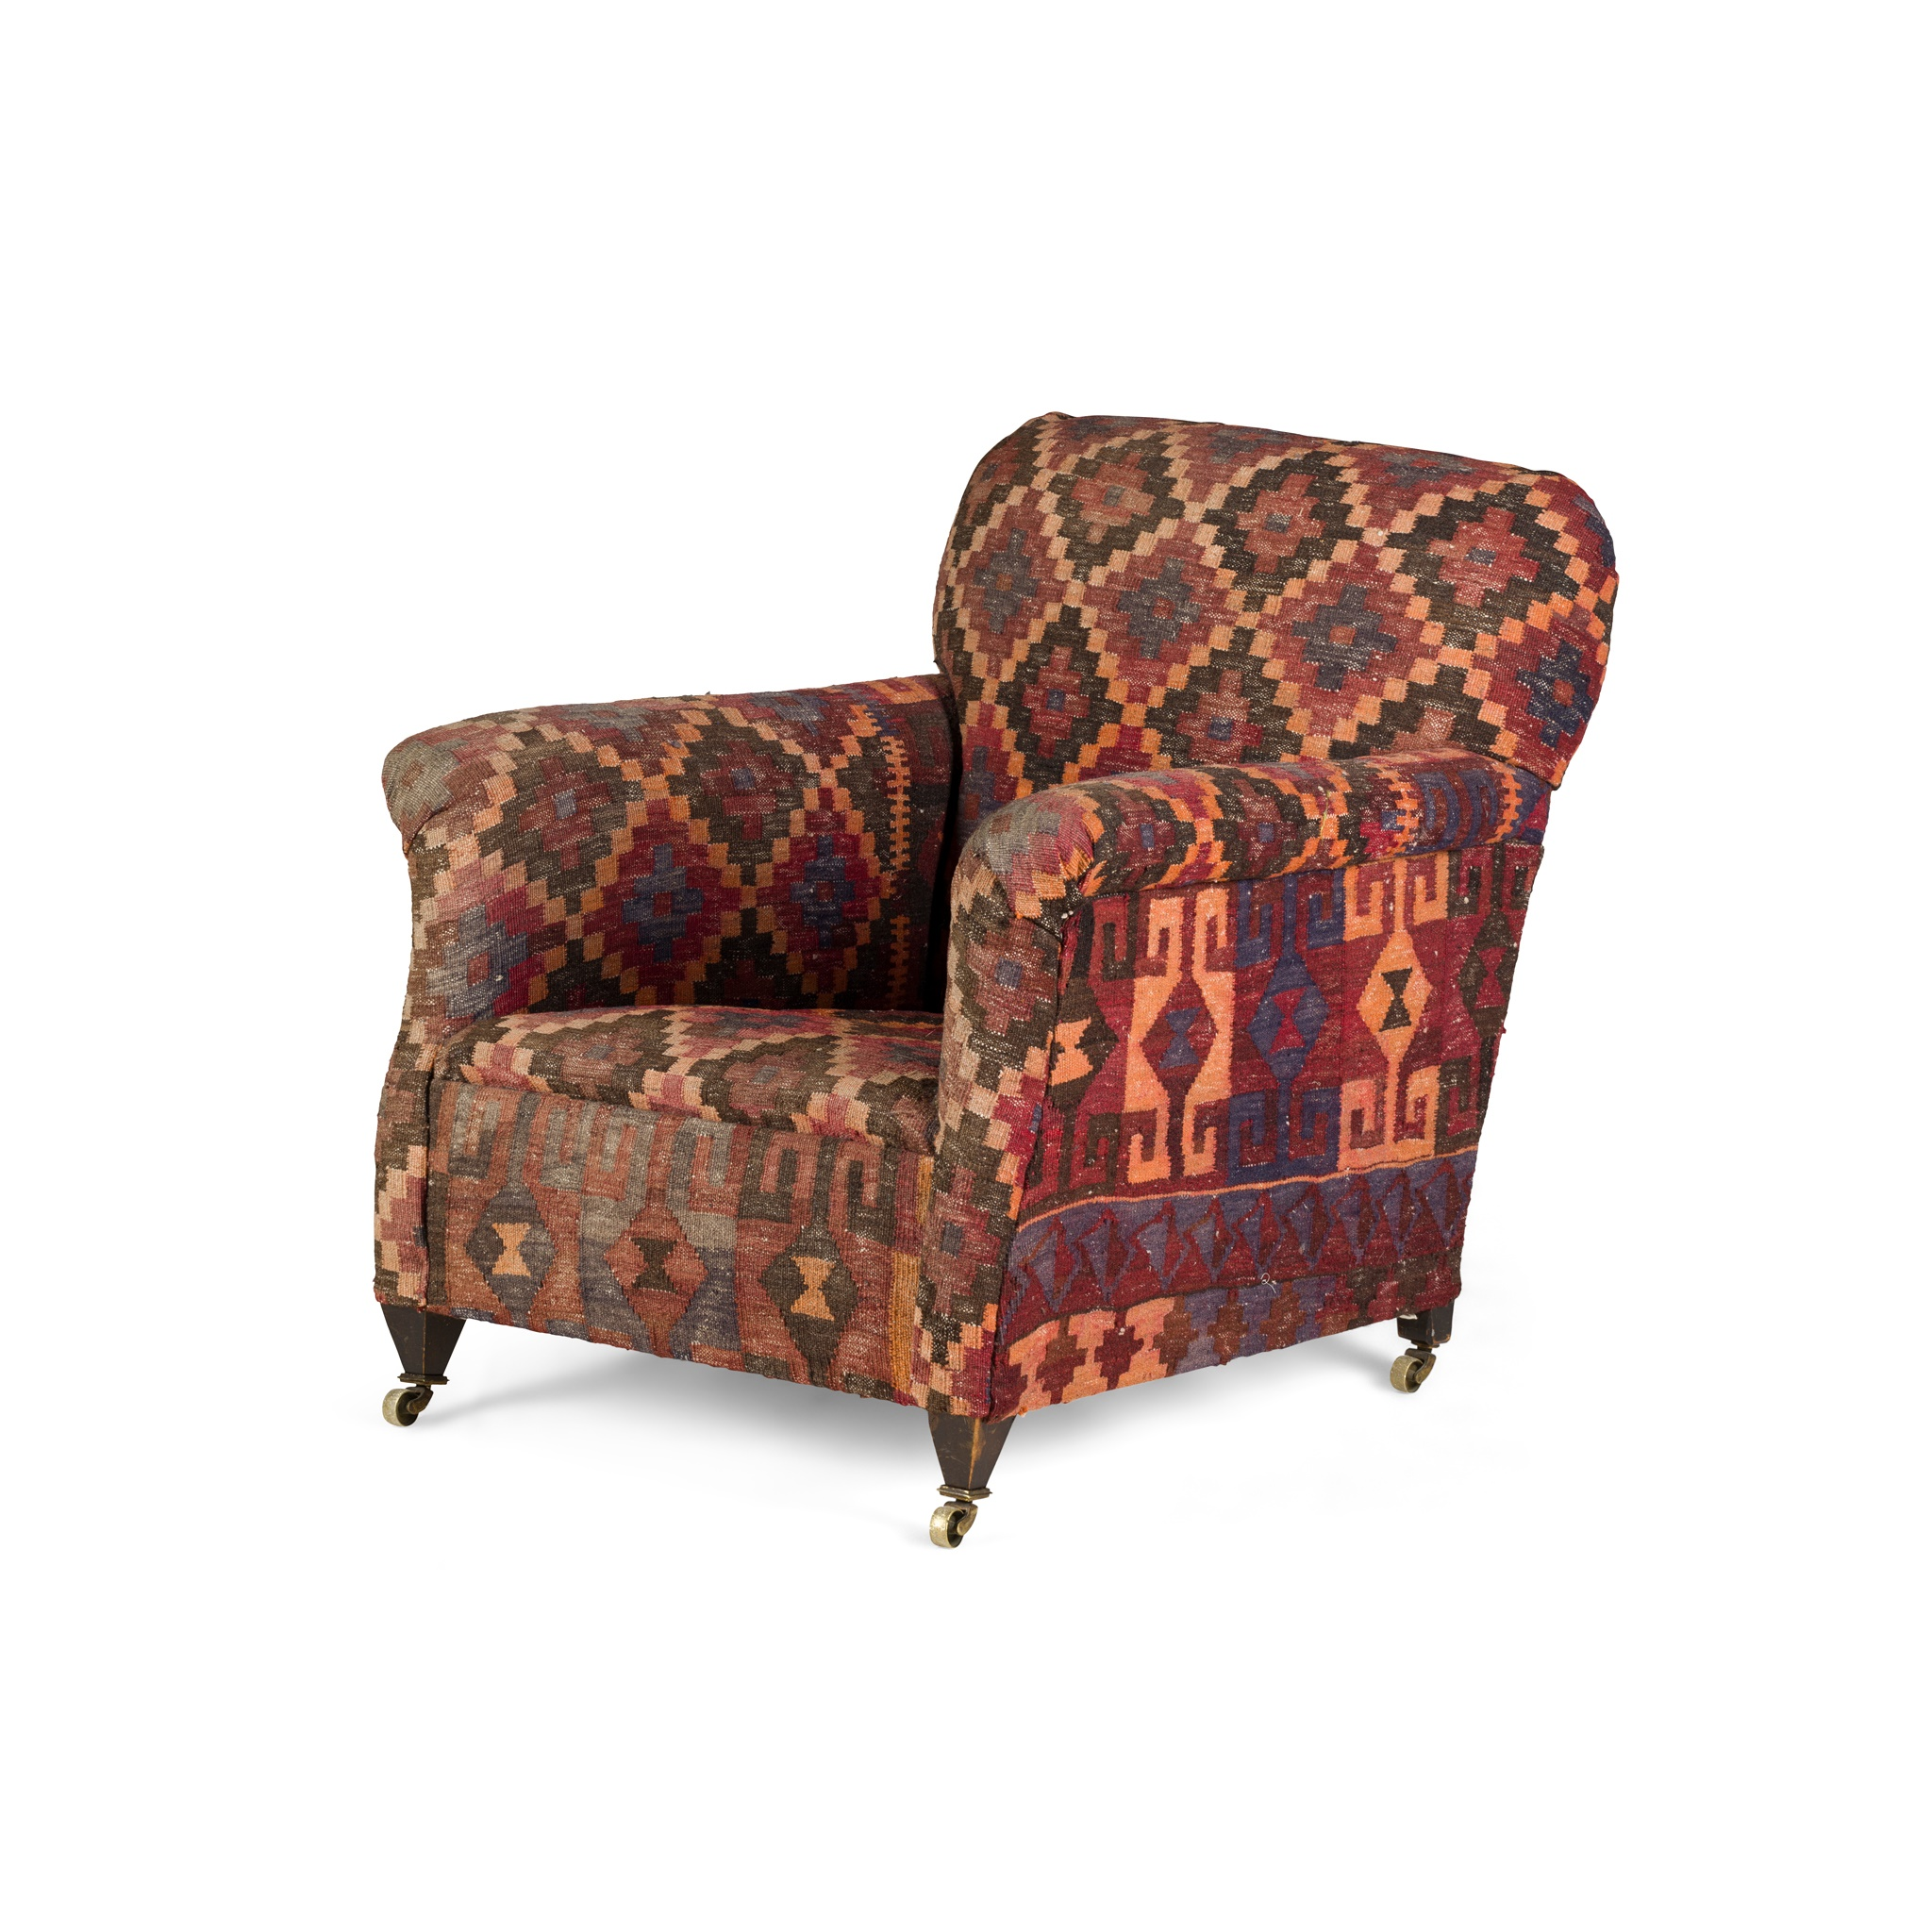 KELIM UPHOLSTERED ARMCHAIR EARLY 20TH CENTURY